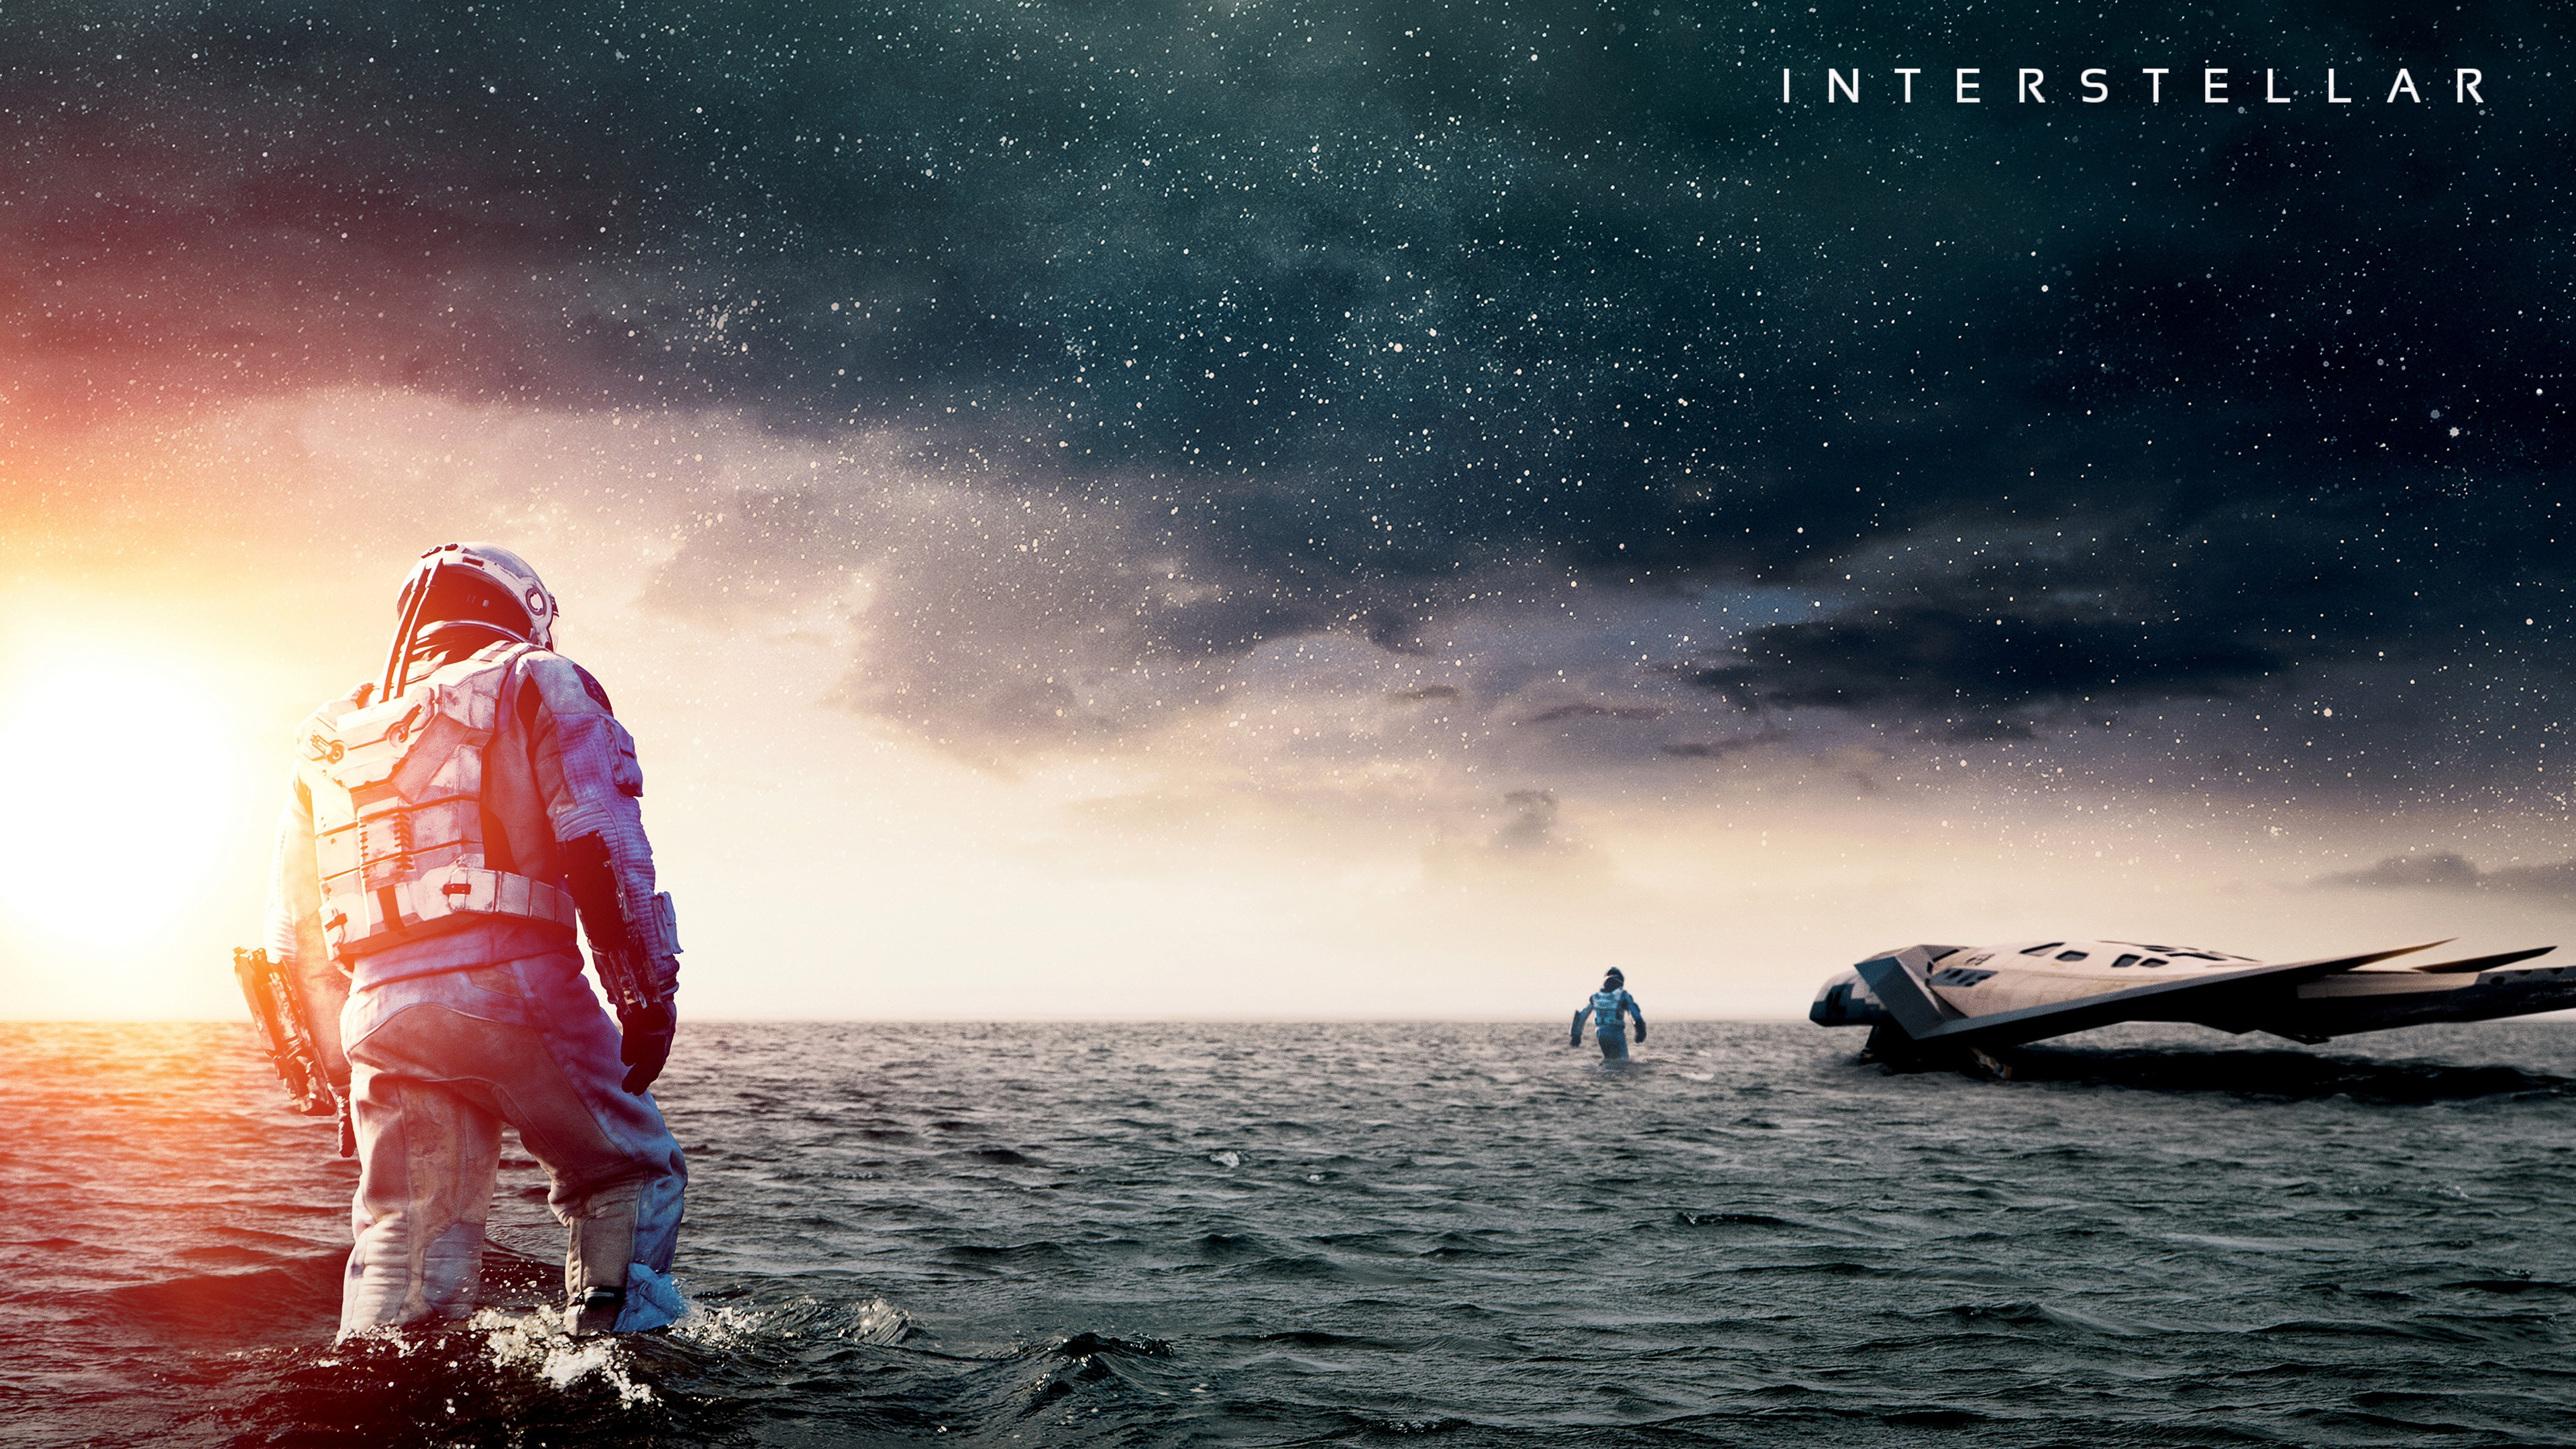 Interstellar Movie Wallpaper